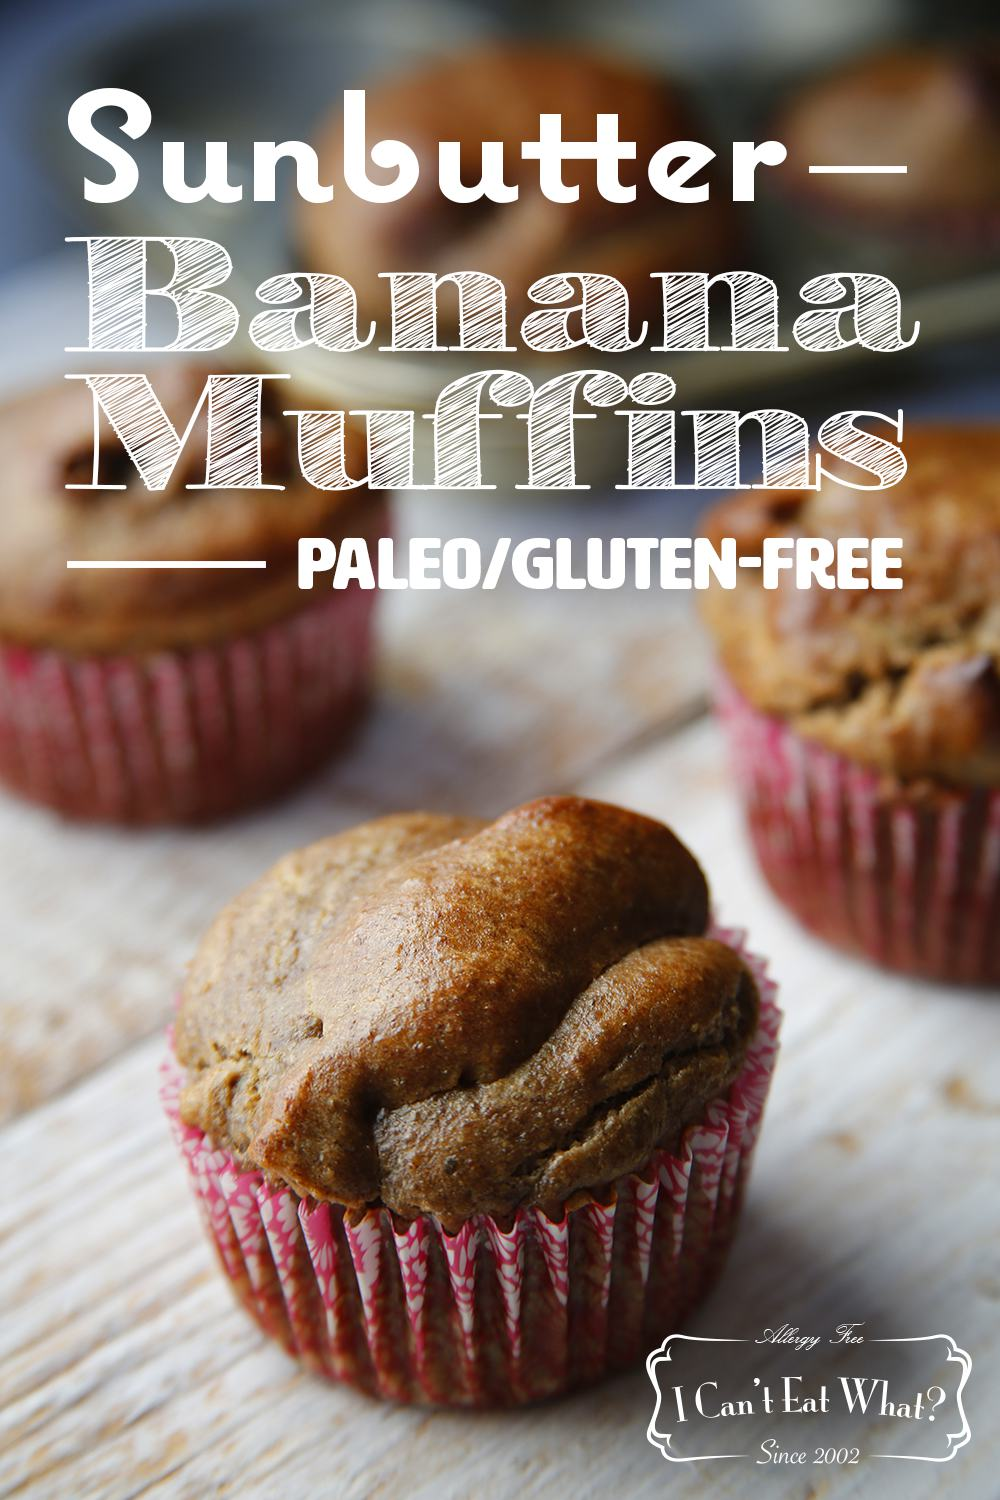 Paleo/Vegan Sunflower Banana Muffins